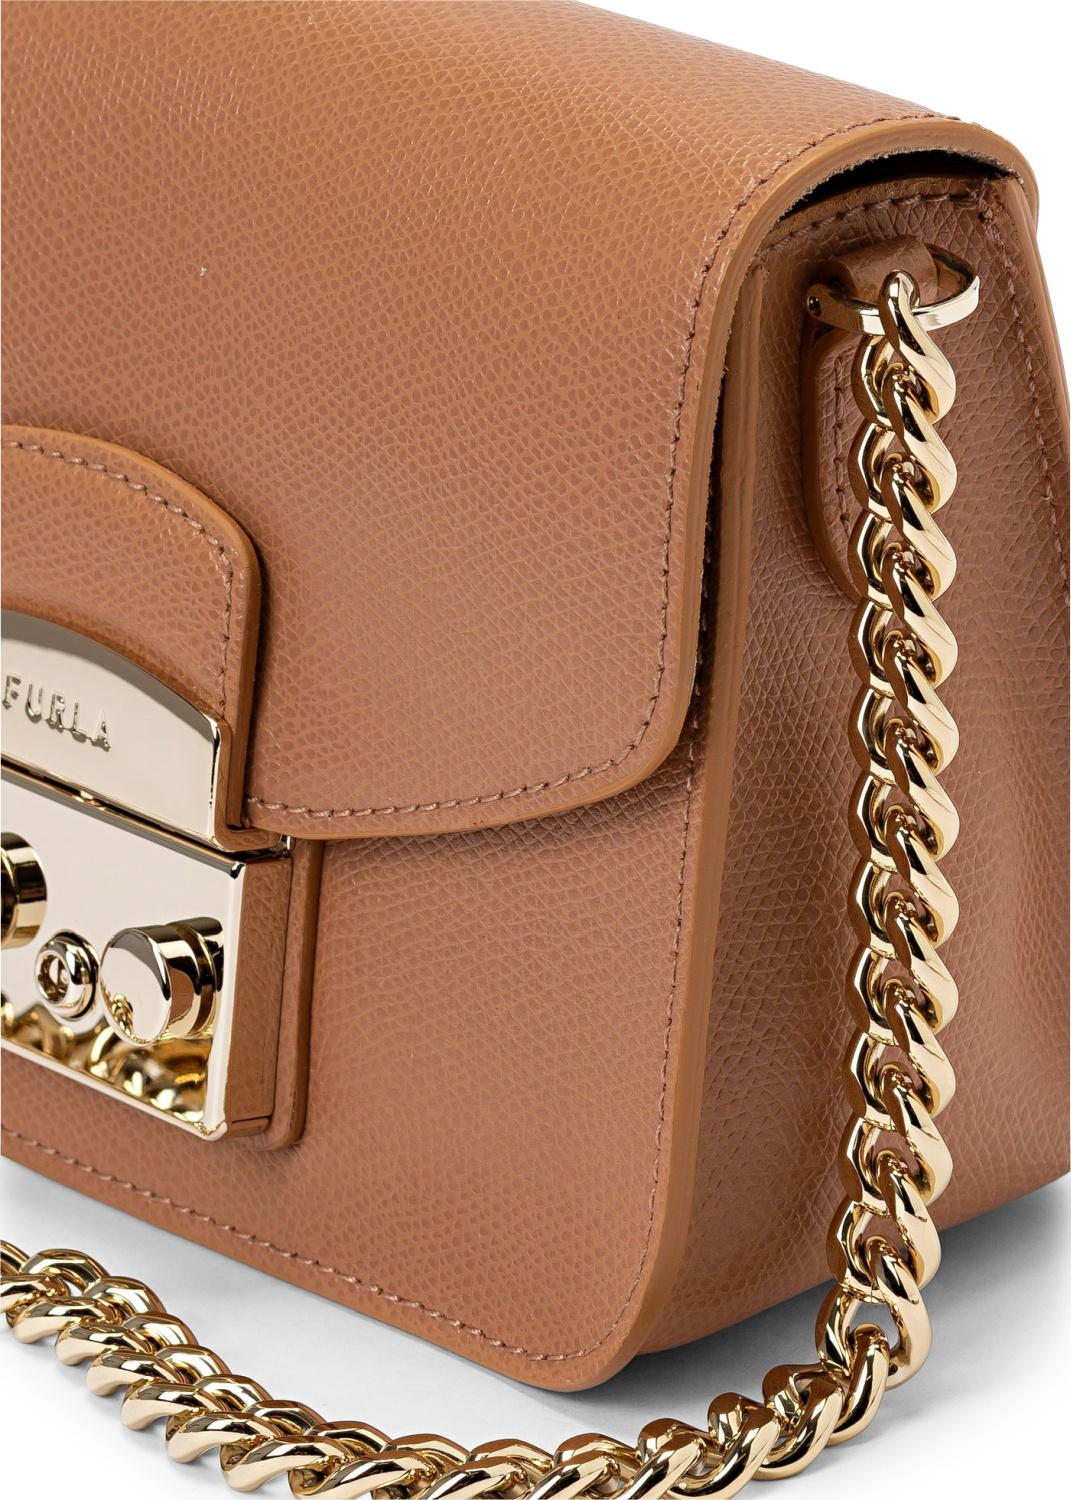 METROPOLIS MINI CROSSBODY image number 2